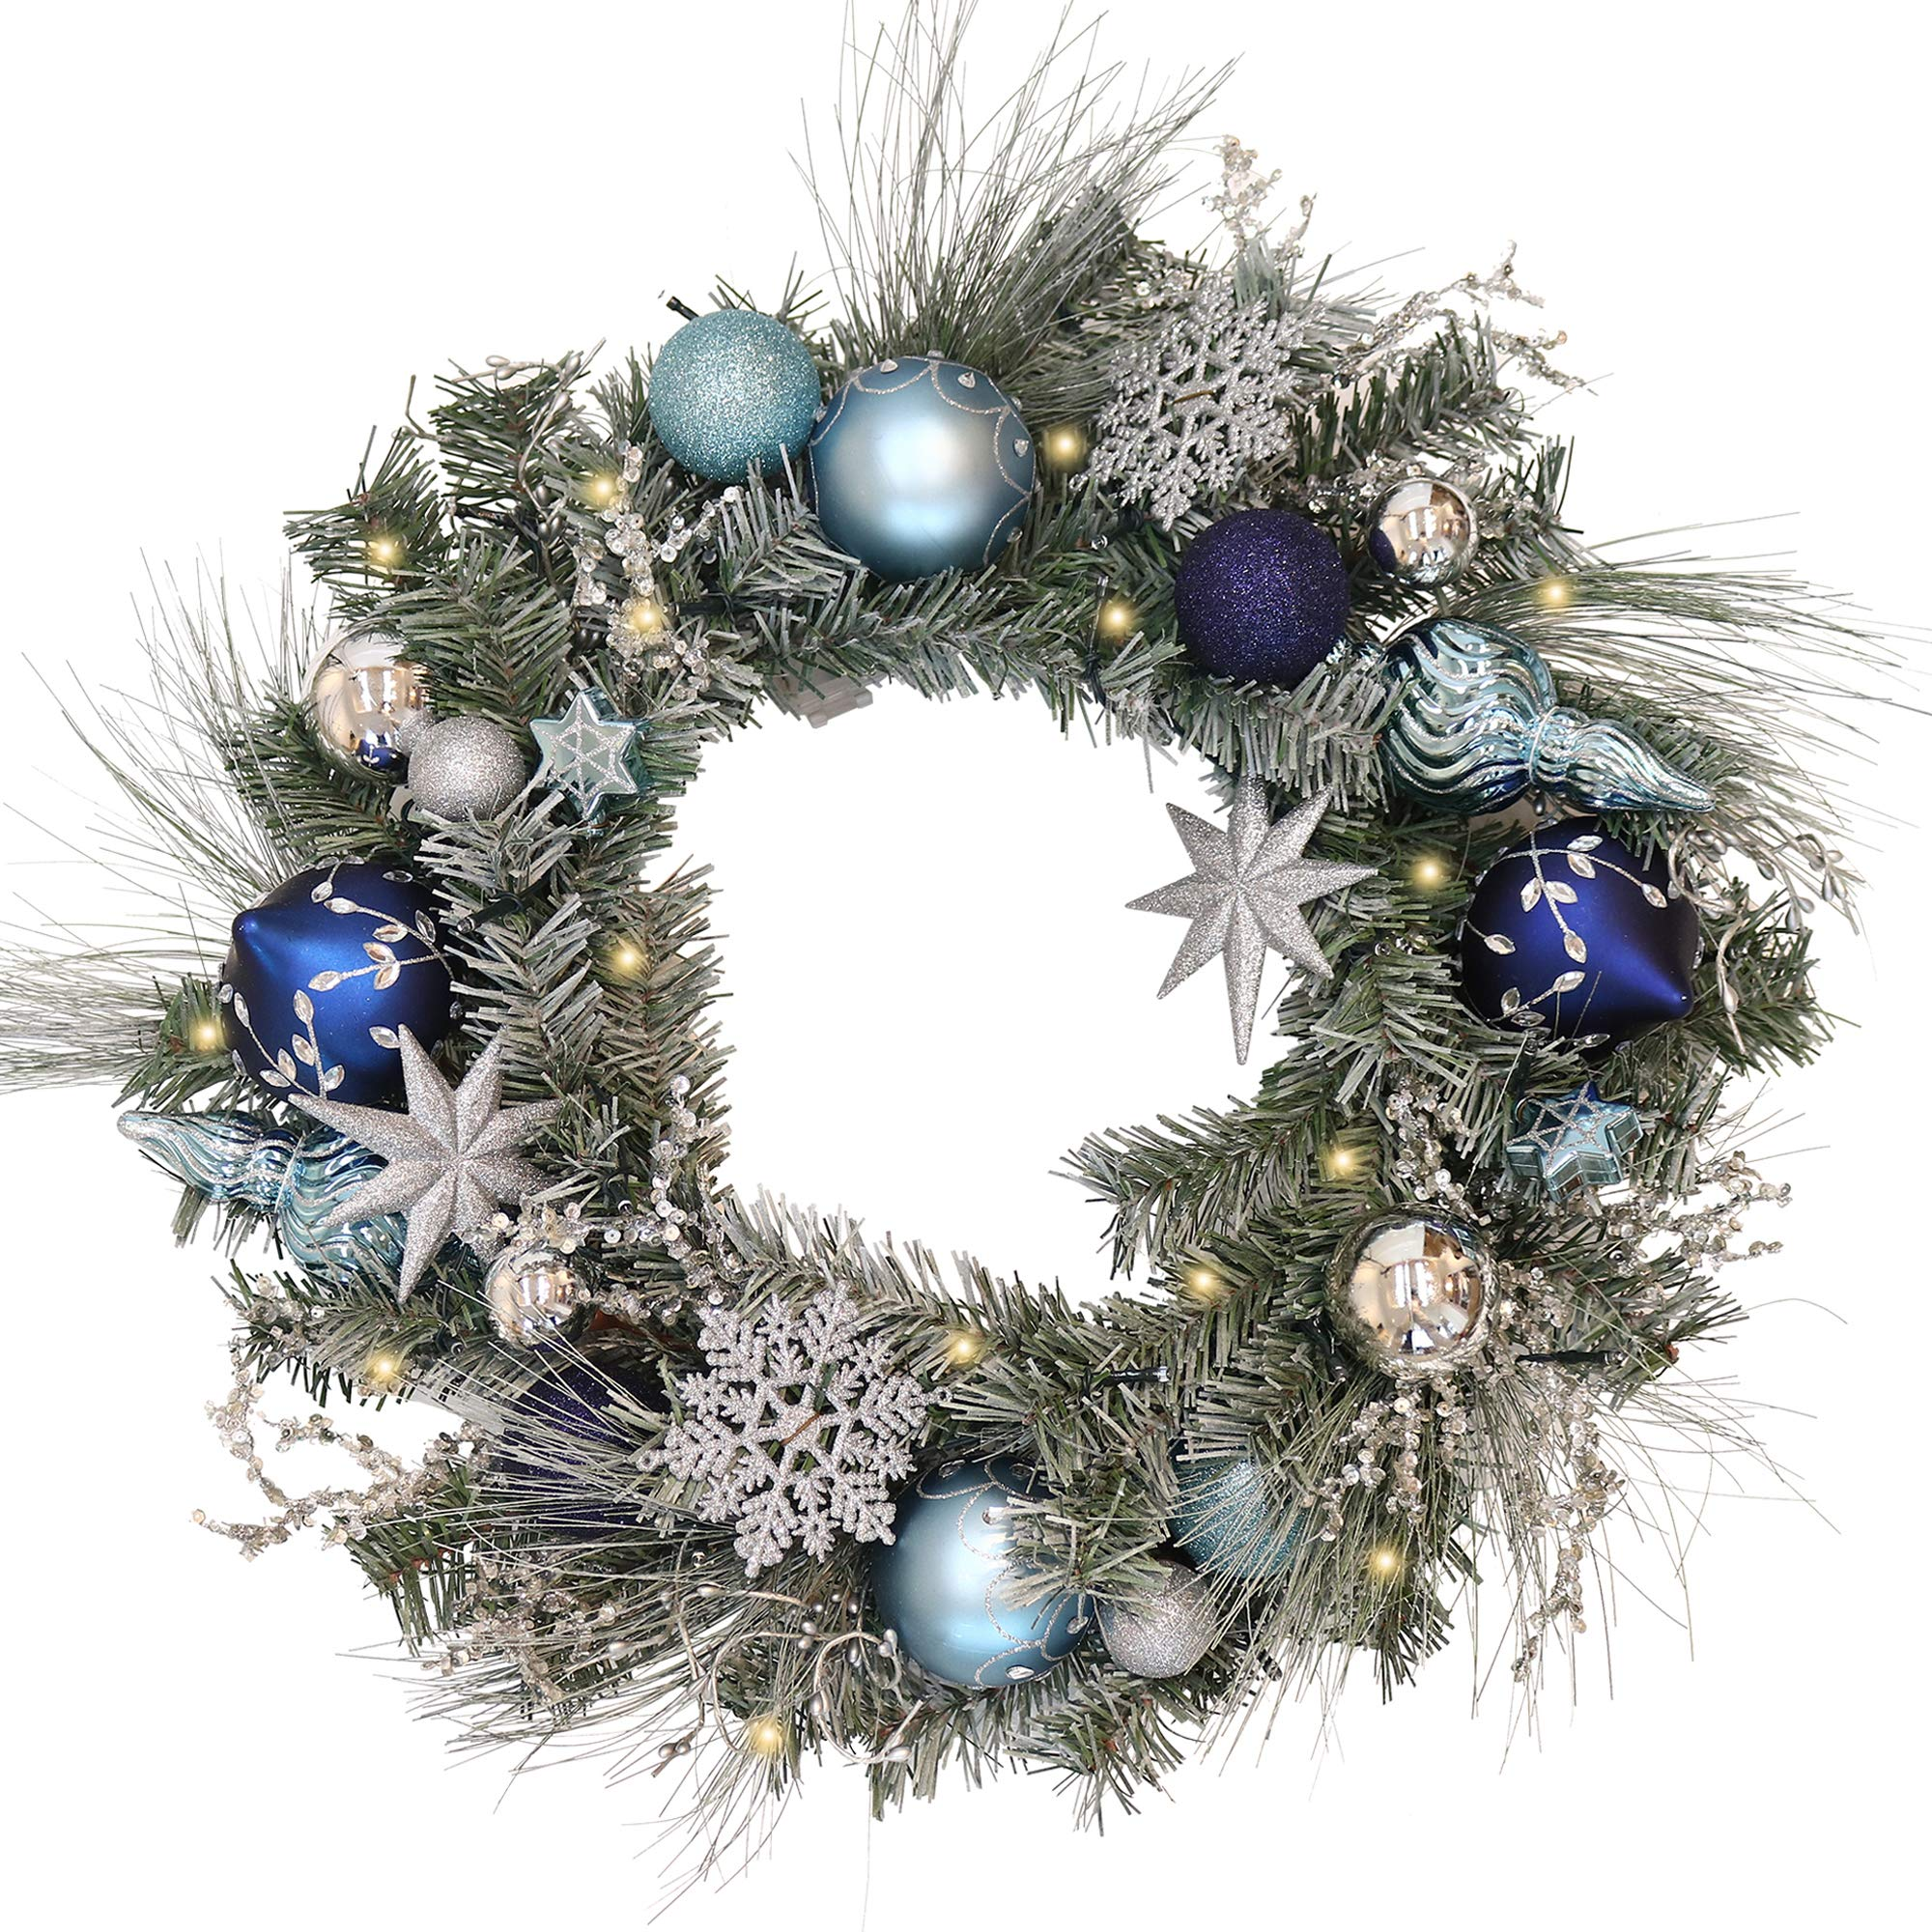 V&M VALERY MADELYN Christmas Wreath Pre-Lit 24'' Silver&Blue Artificial Greenery Frosted Spruce Wreath, Decorative Wreath with Christmas Ball Ornaments and Snowflake, Battery Operated 20 LED Lights.